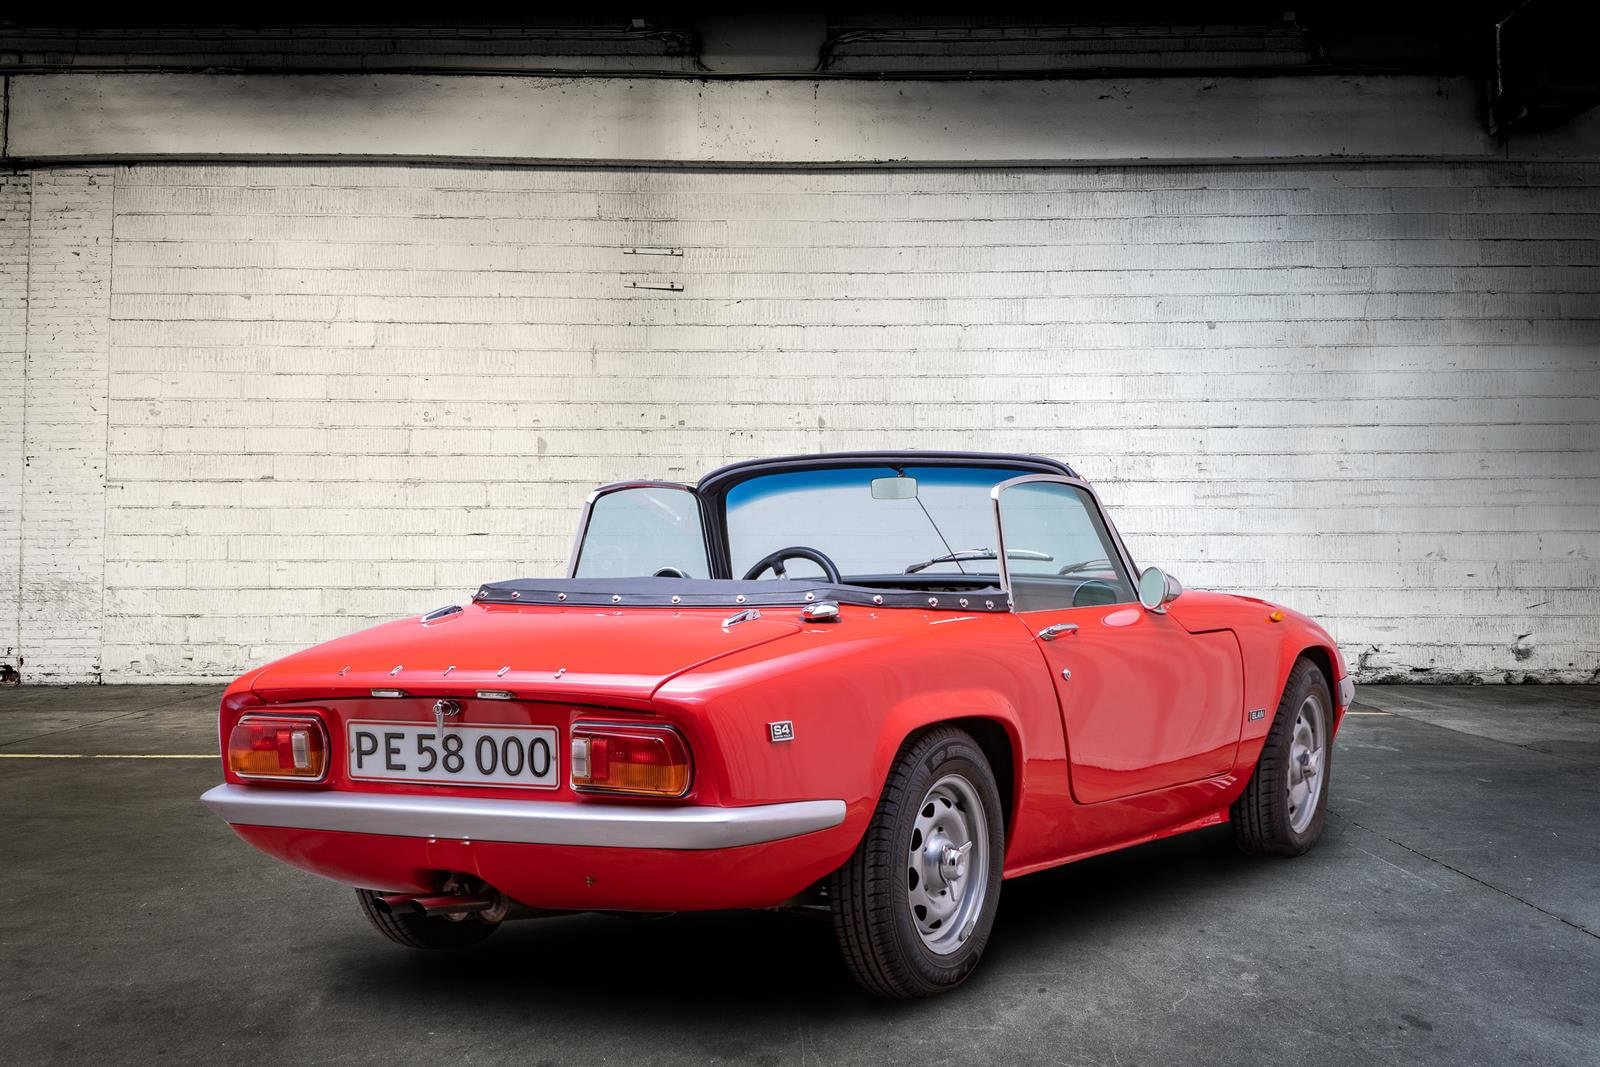 1968 Lotus Elan S4 SE Cabriolet For Sale (picture 3 of 6)